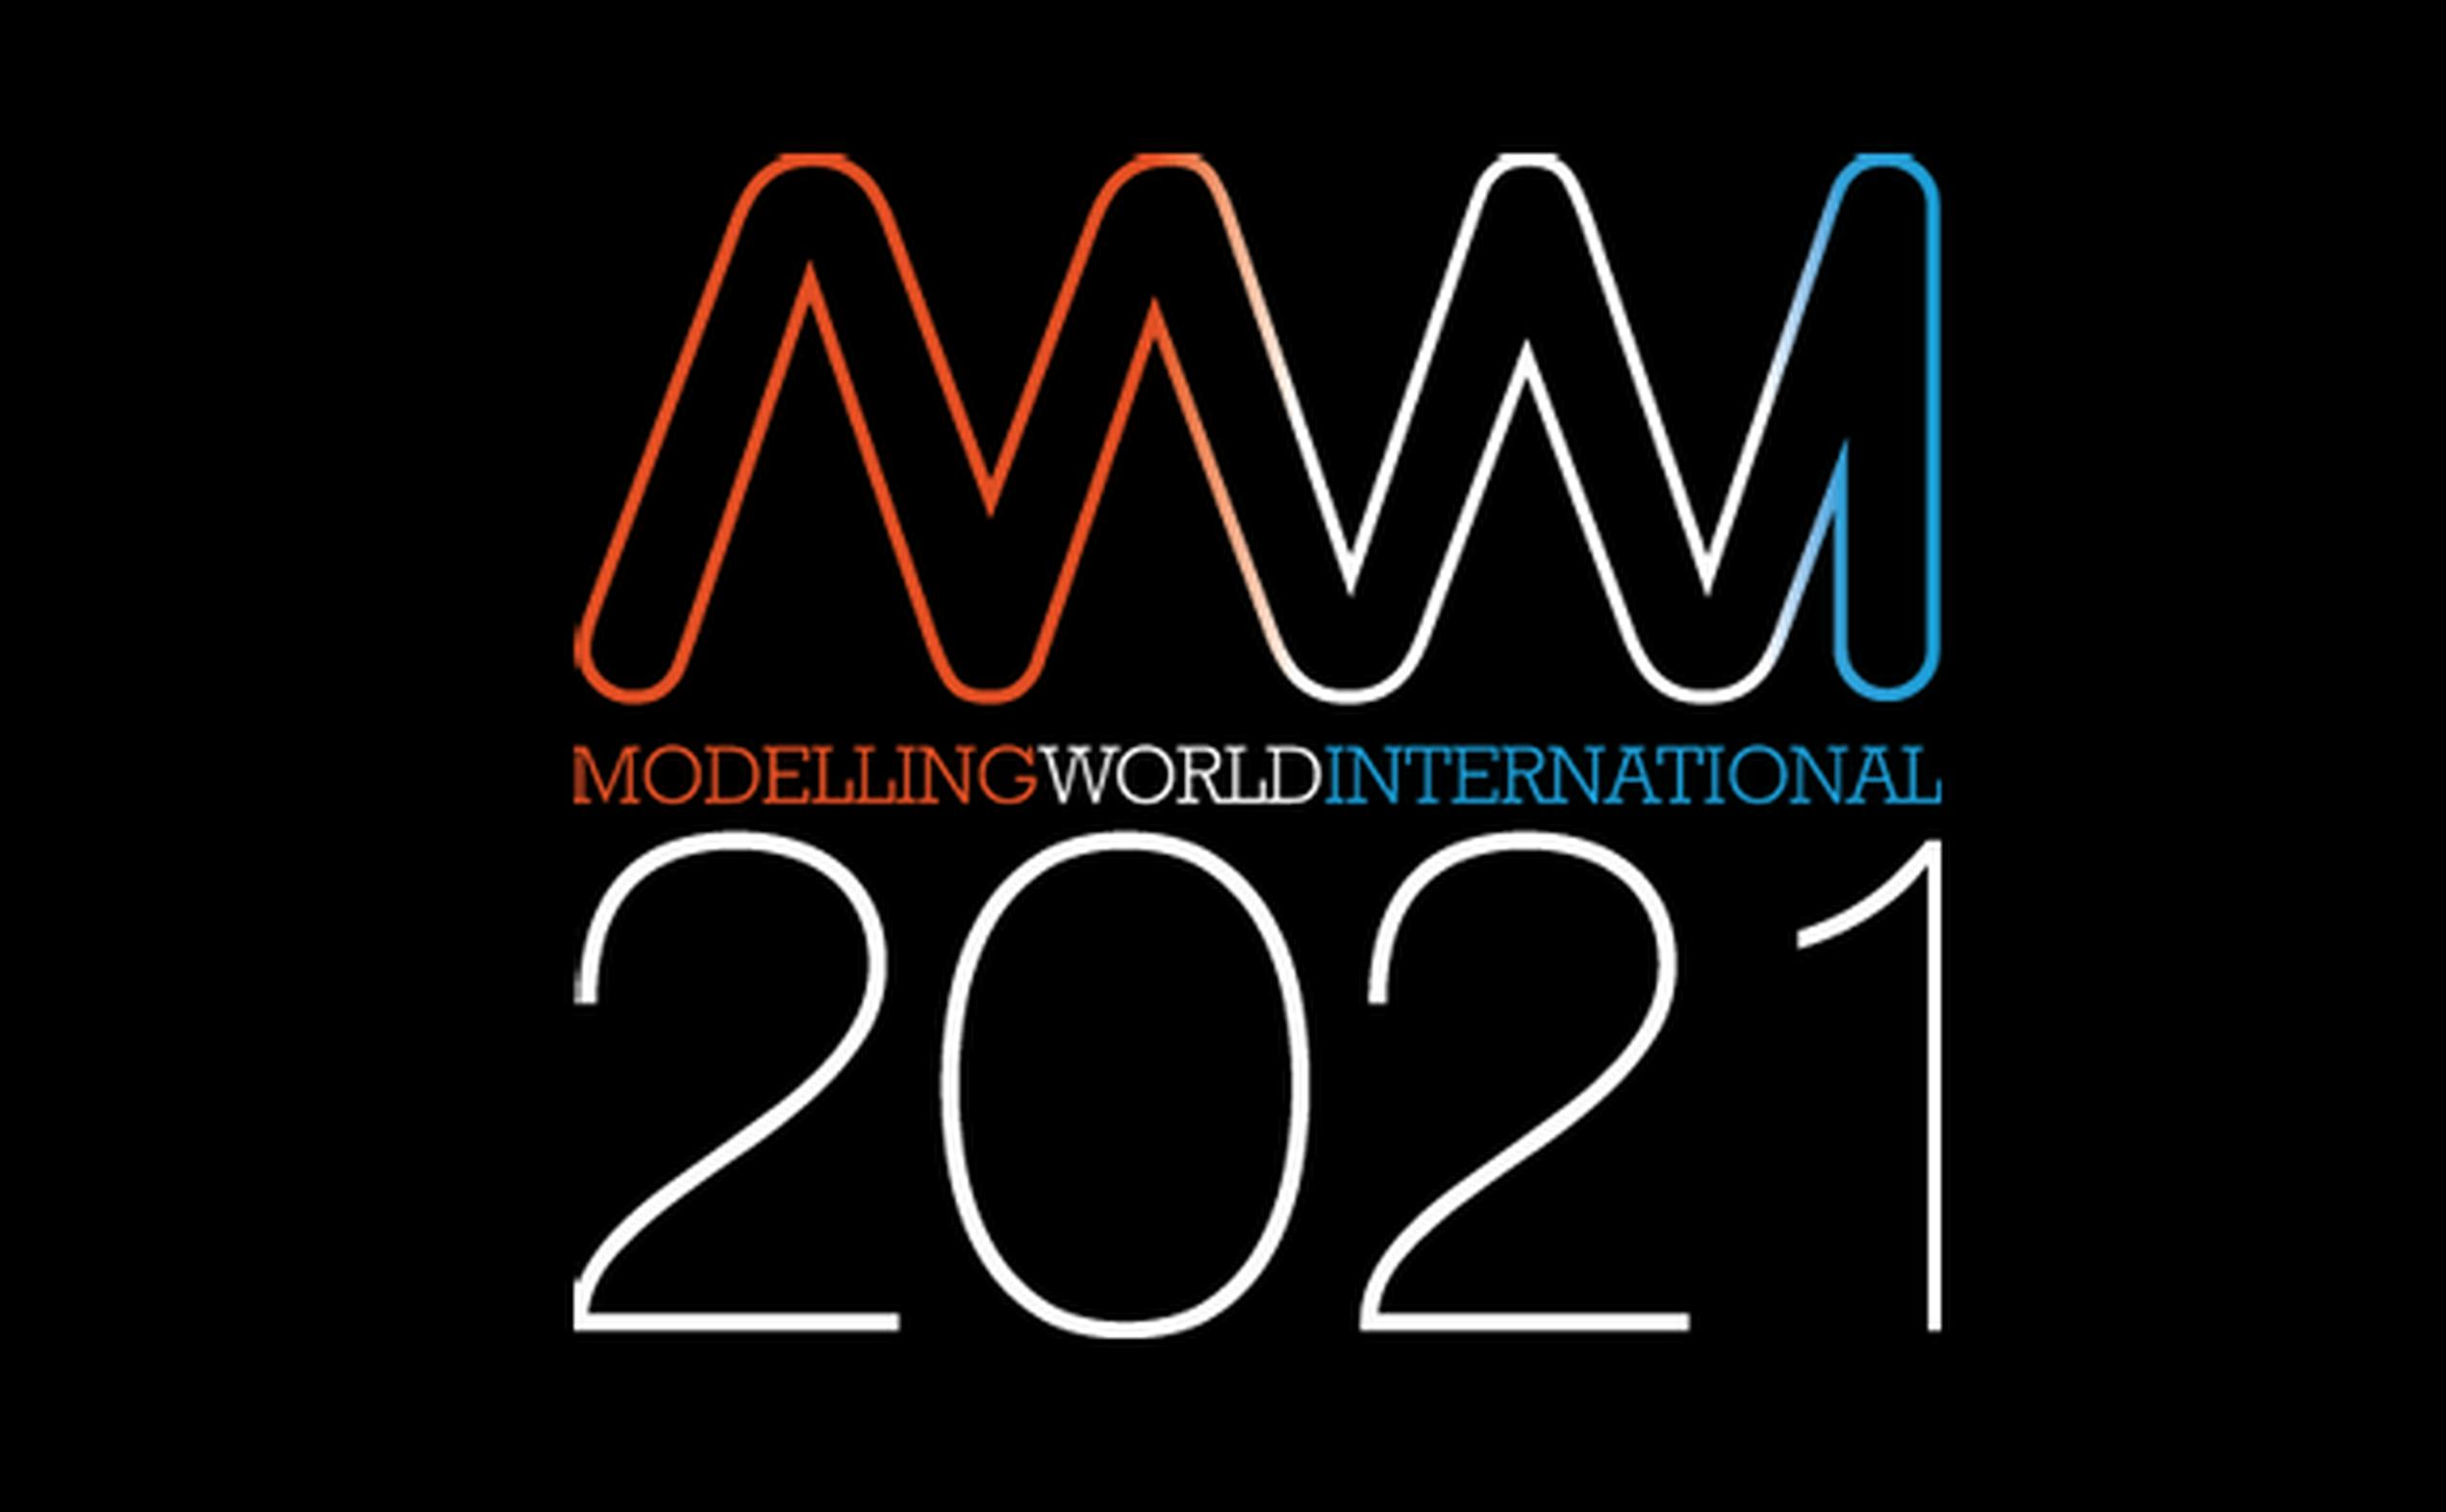 Modelling World International takes place online from 19-21 April